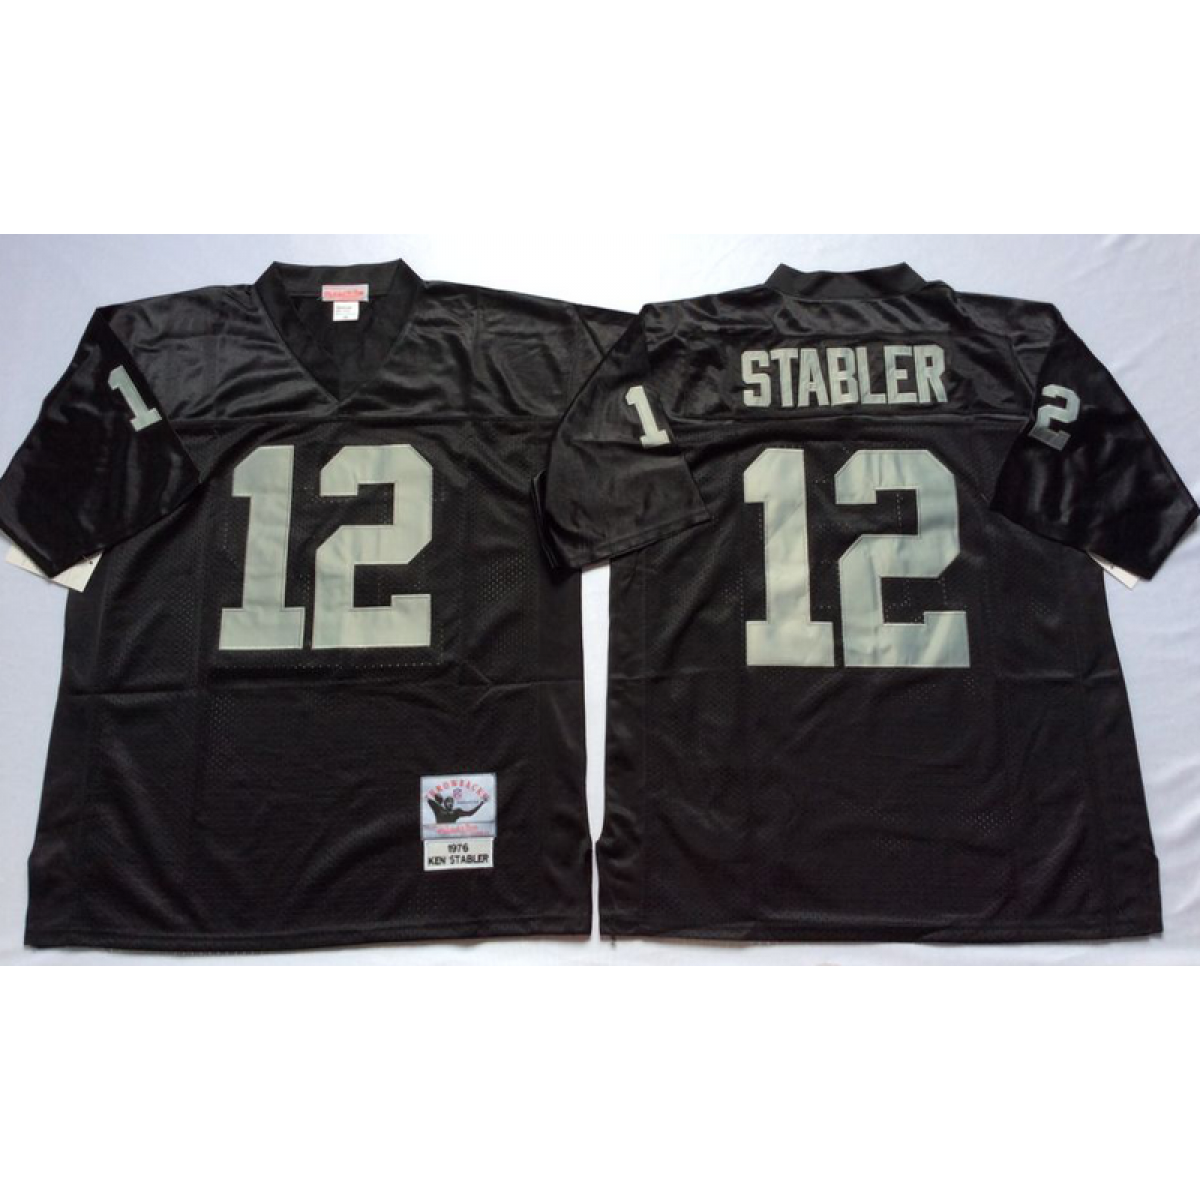 cheap for discount fe35d 2a53a NFL Mitchell and Ness Retired Oakland Raiders 12 Kenny Stabler Black Jersey